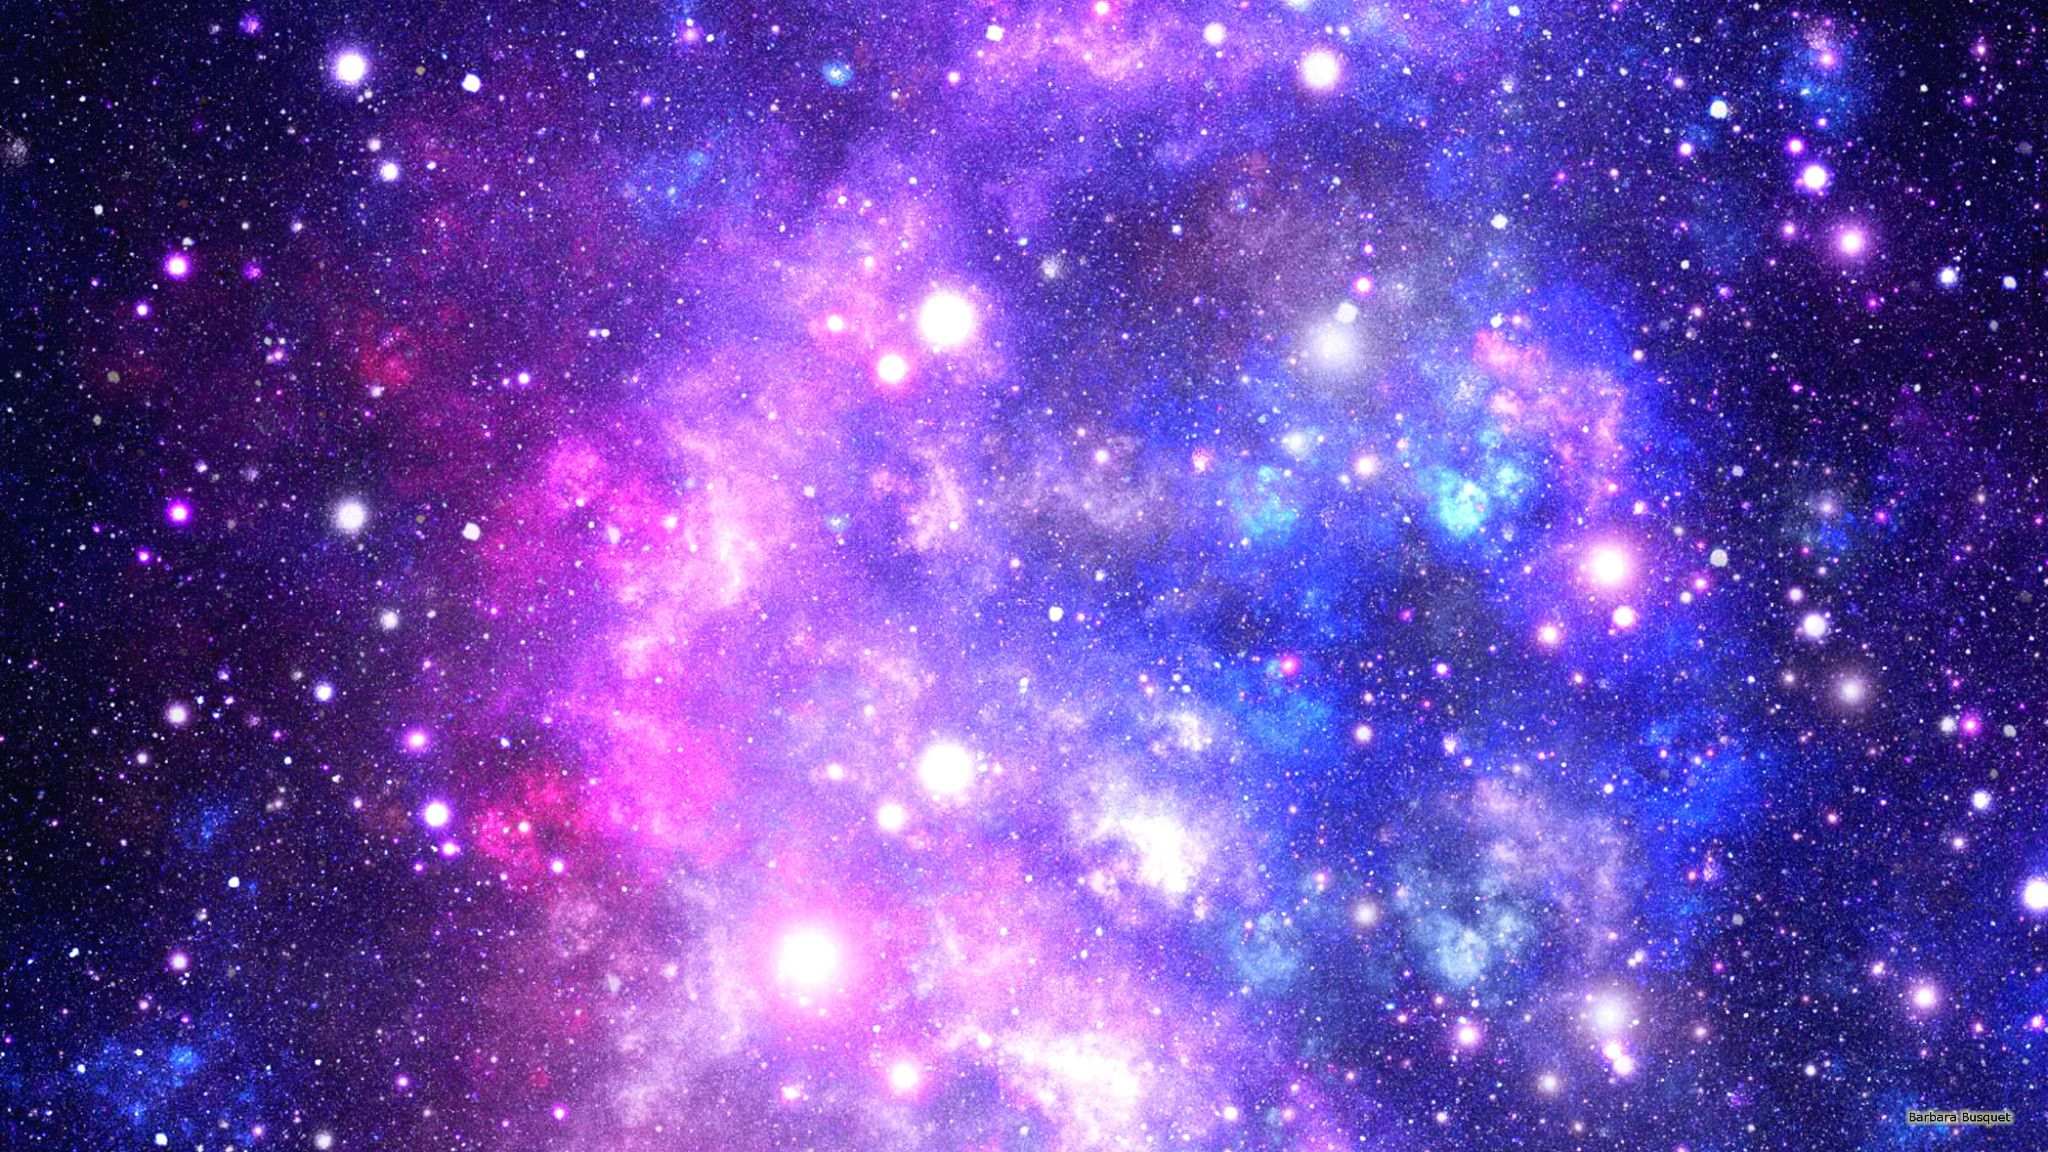 Galaxy wallpaper with colors and stars 2048x1152 Galaxy 2048x1152